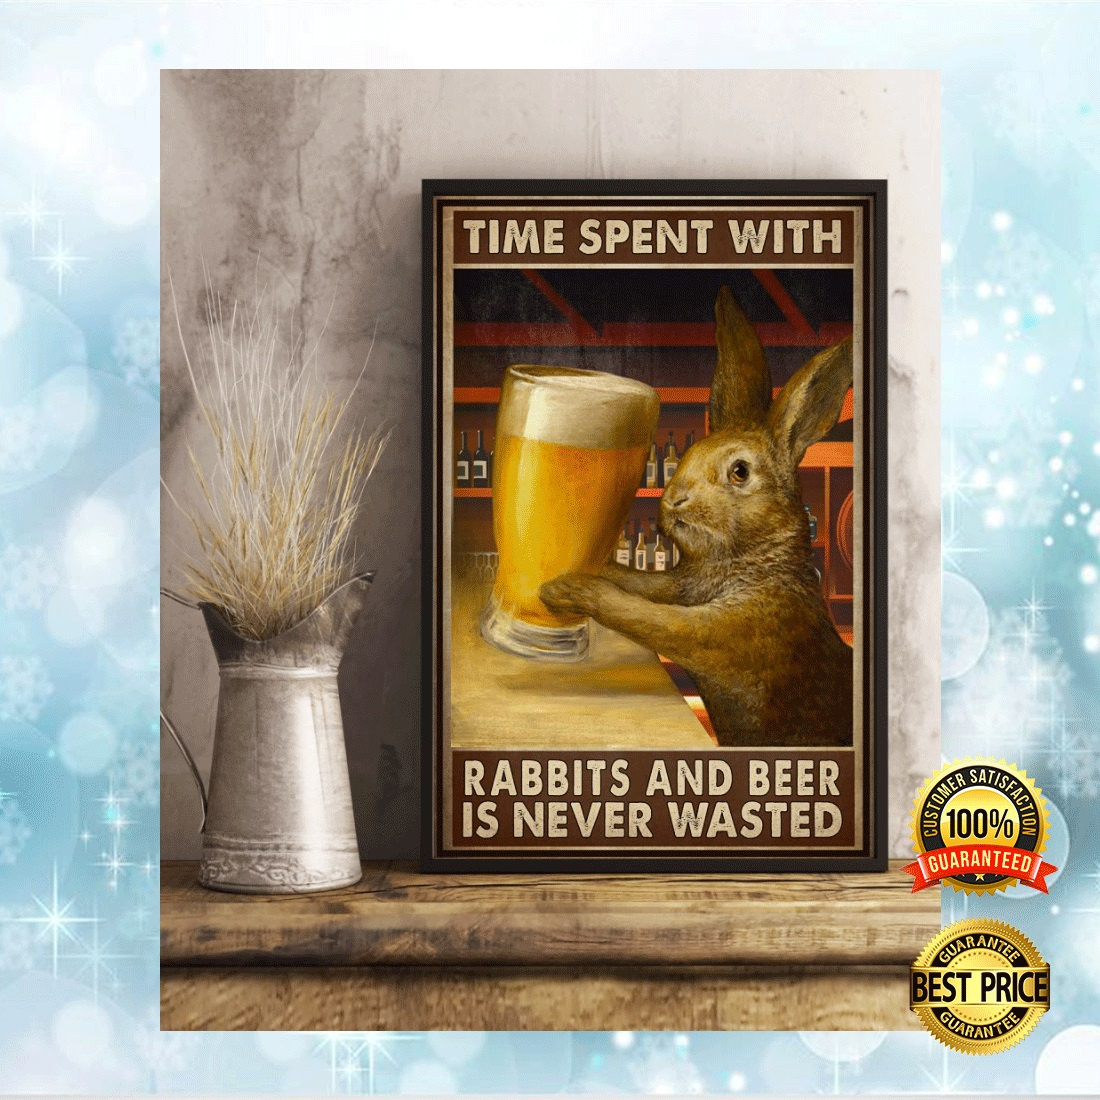 TIME SPENT WITH RABBITS AND BEER IS NEVER WASTED POSTER 4